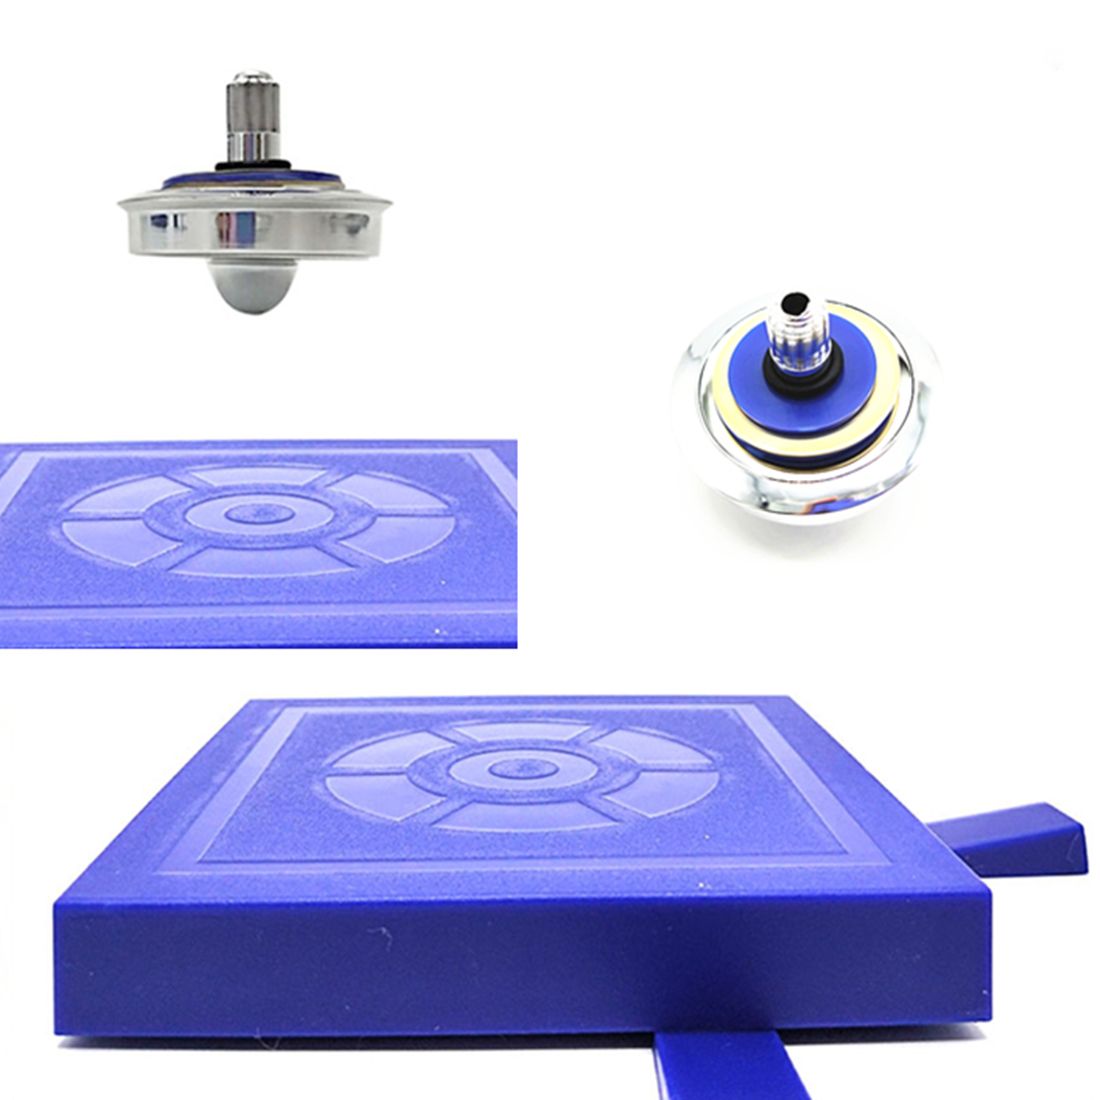 NewUFO Magnetic Suspension Gyro Magnetic Anti-Gravity Flying Saucer Toy